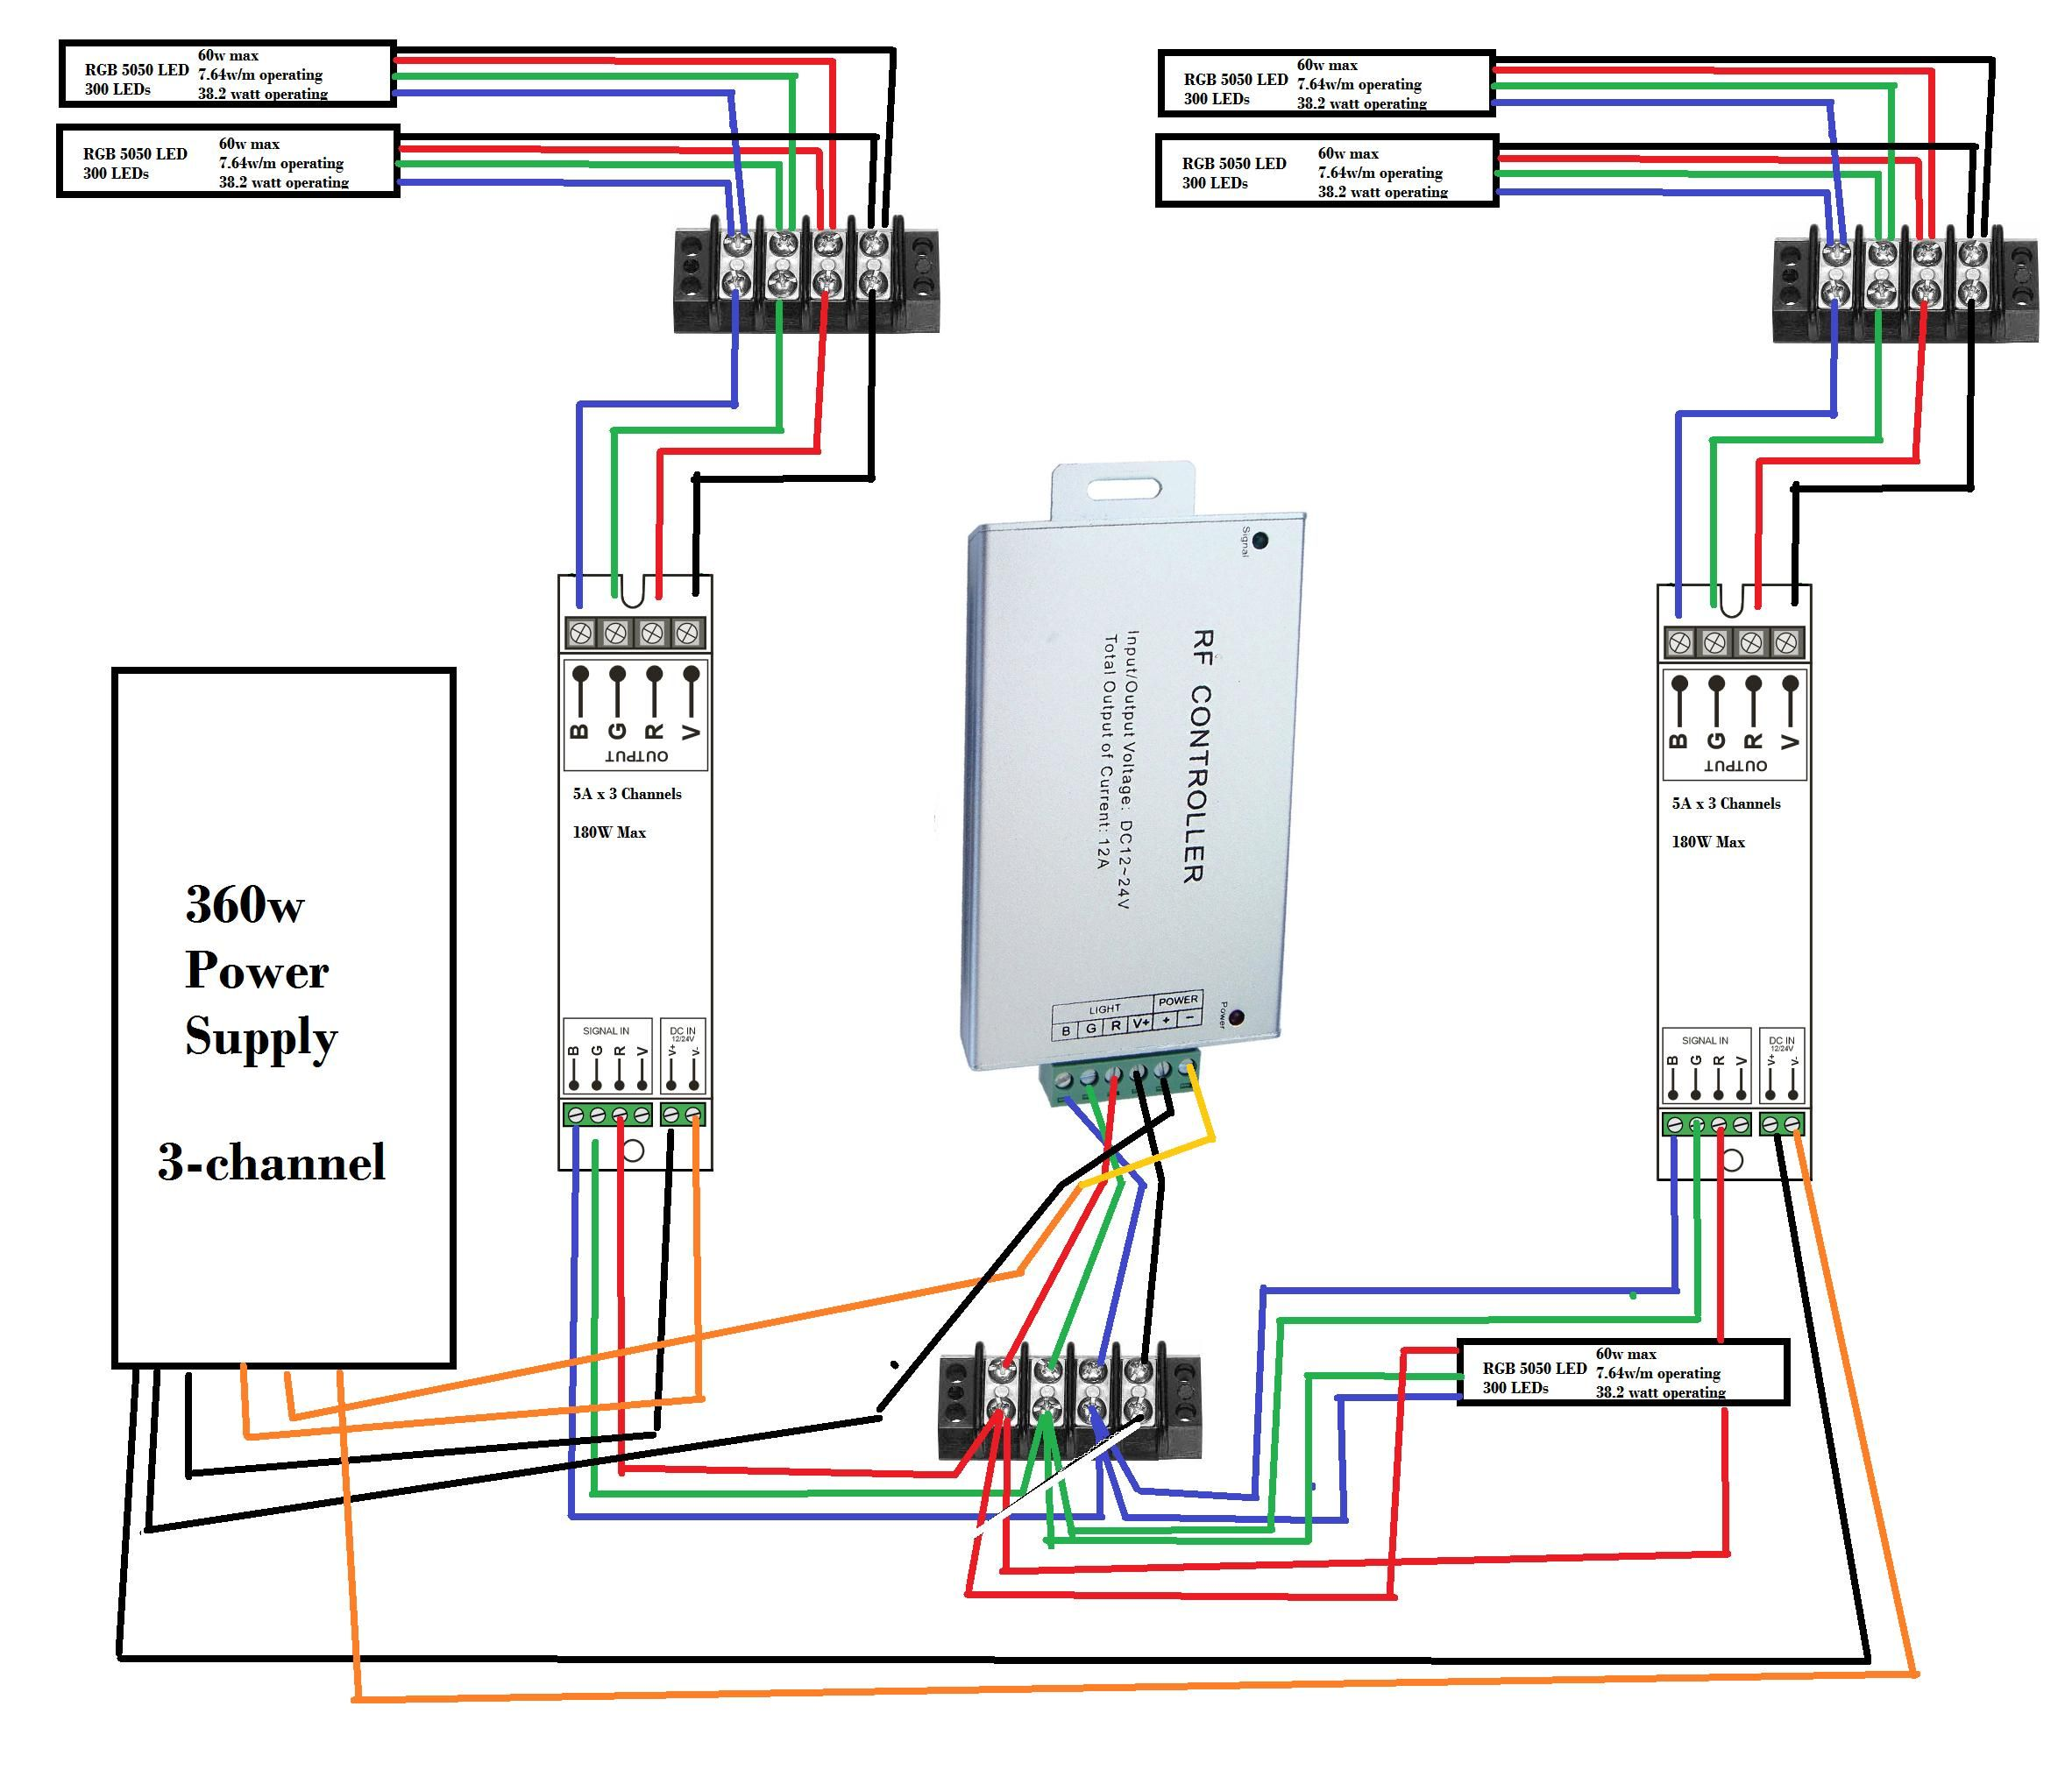 medium resolution of image result for connecting led strip to 12 volt car battery power supply wiring diagram